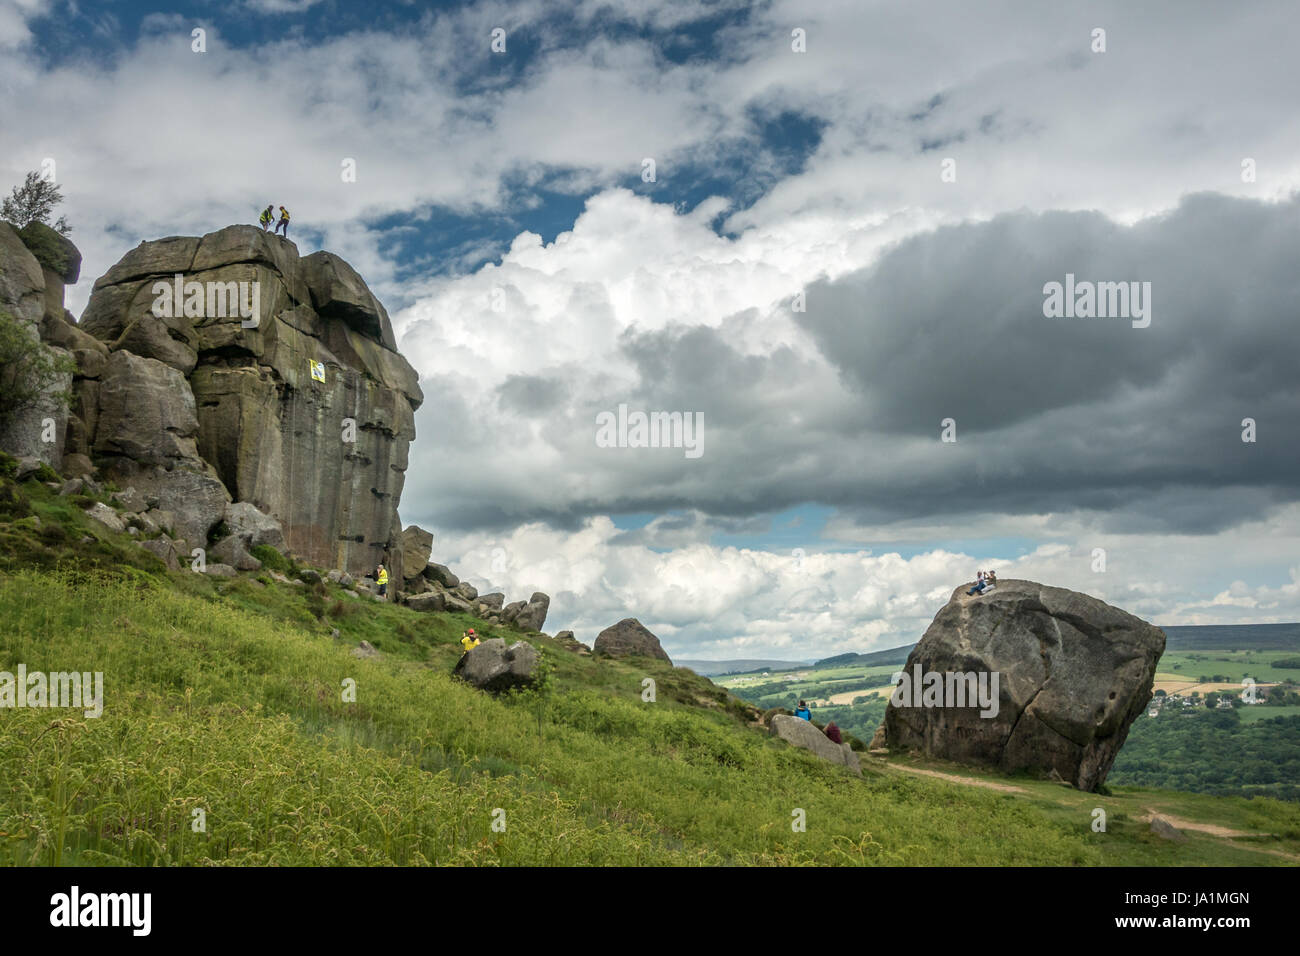 Ilkley, West Yorkshire, UK. 4th June, 2017. Supporters of the Aire Valley Against Incineration group turned out - Stock Image